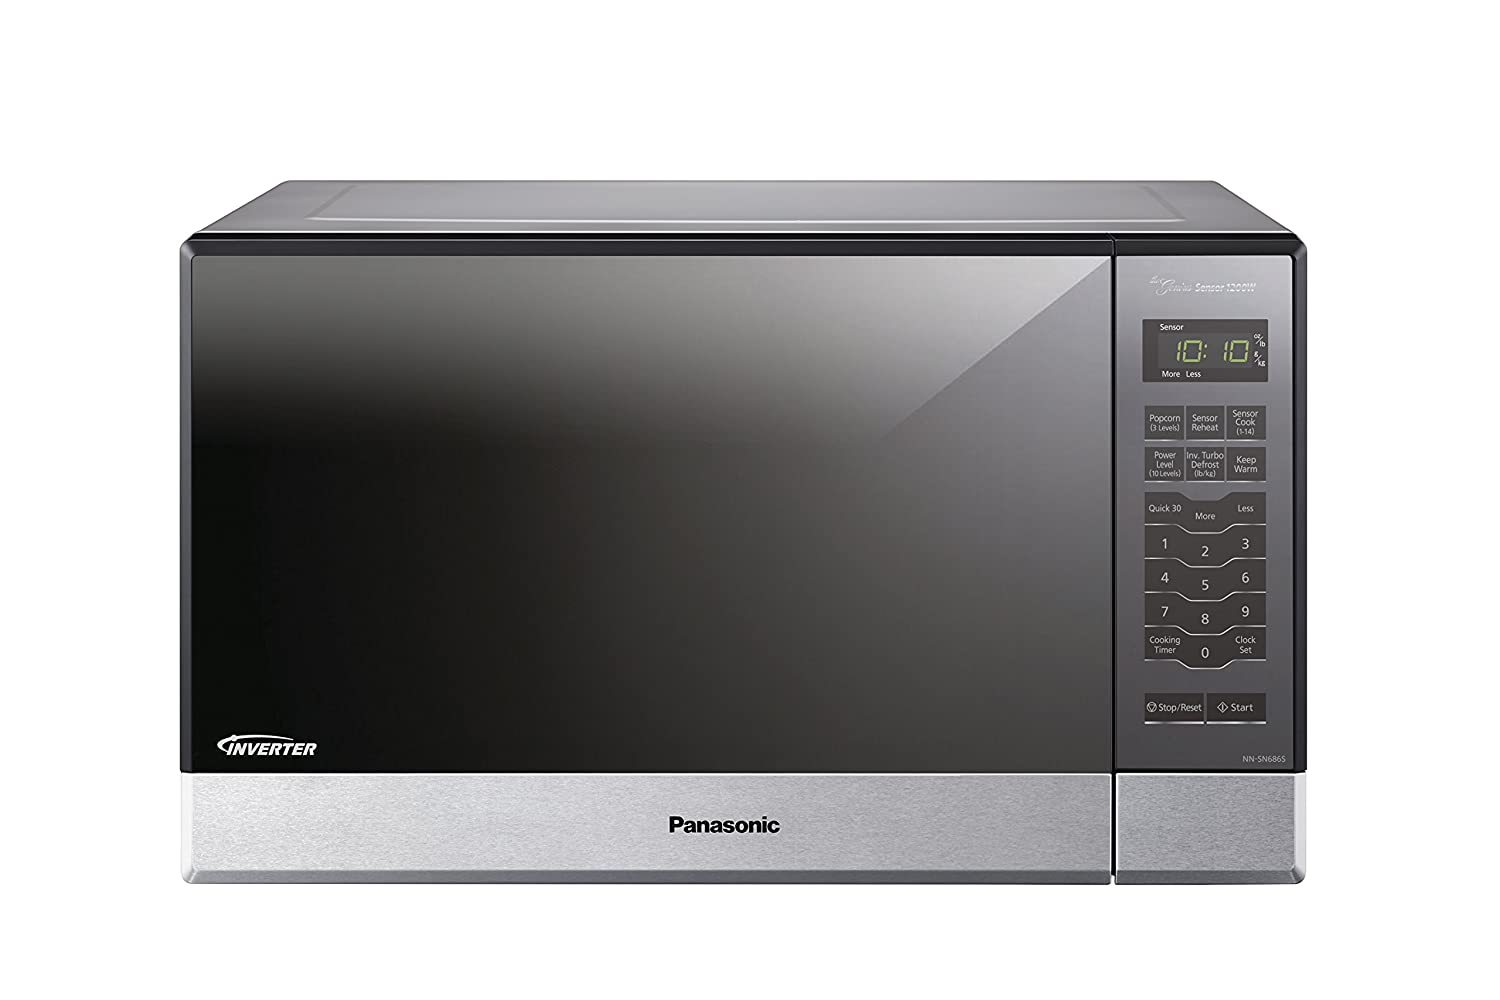 Panasonic NN-SN686S Countertop/Built-In Microwave with Inverter Technology, 1.2 cu. ft. , 1200W, Stainless